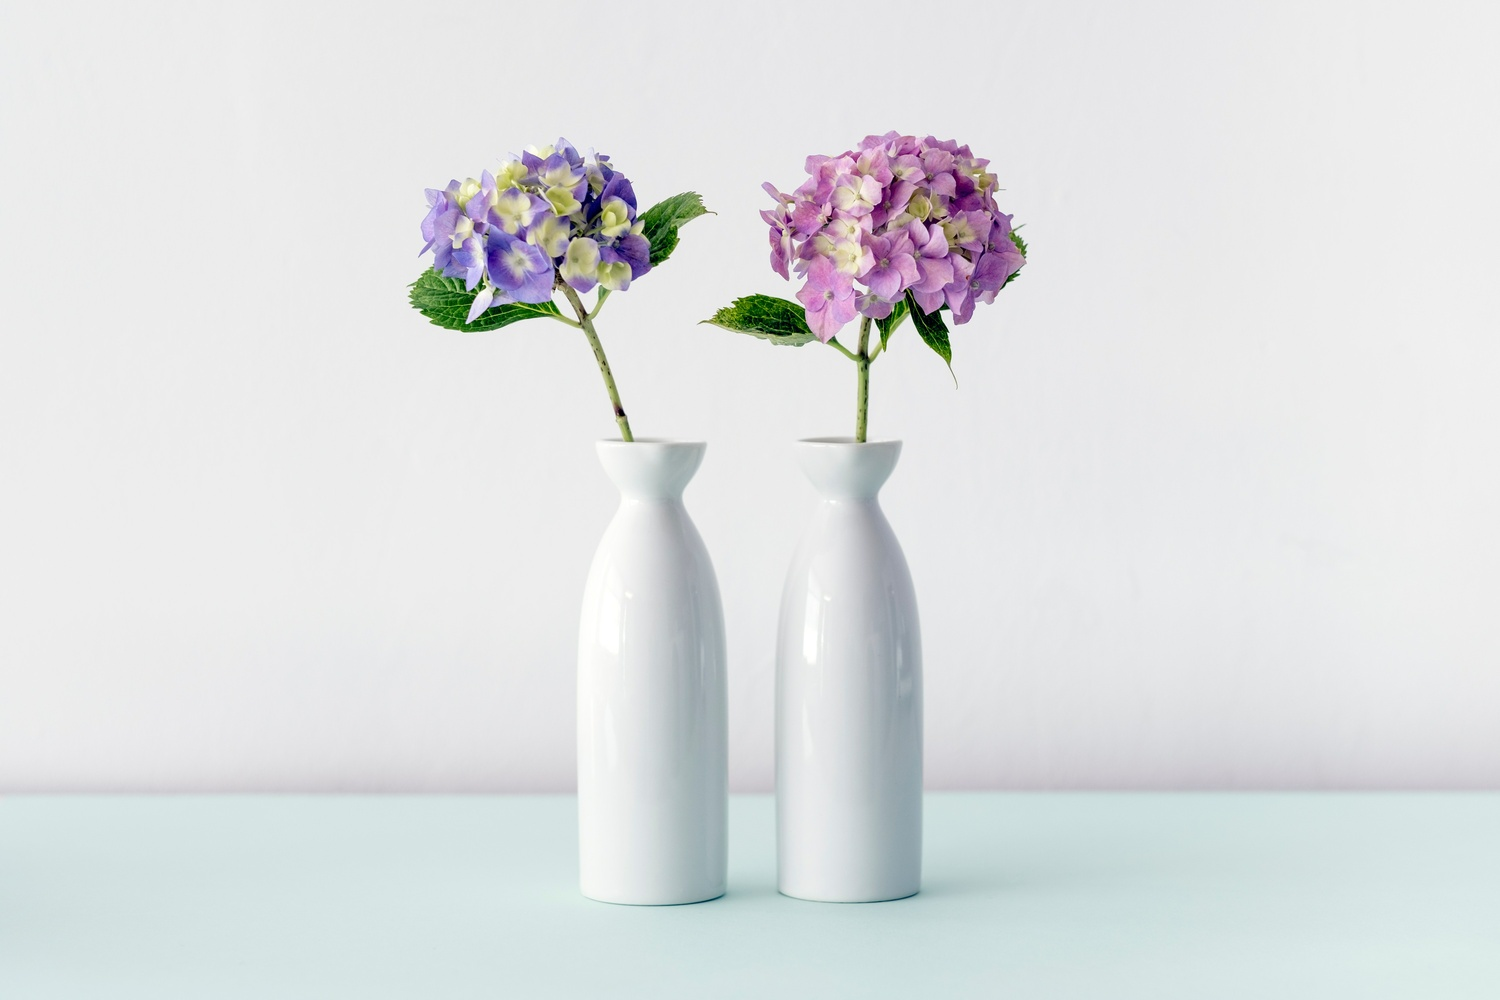 Violet and pink hydrangea flowers in two white vases - Möbel Preiss